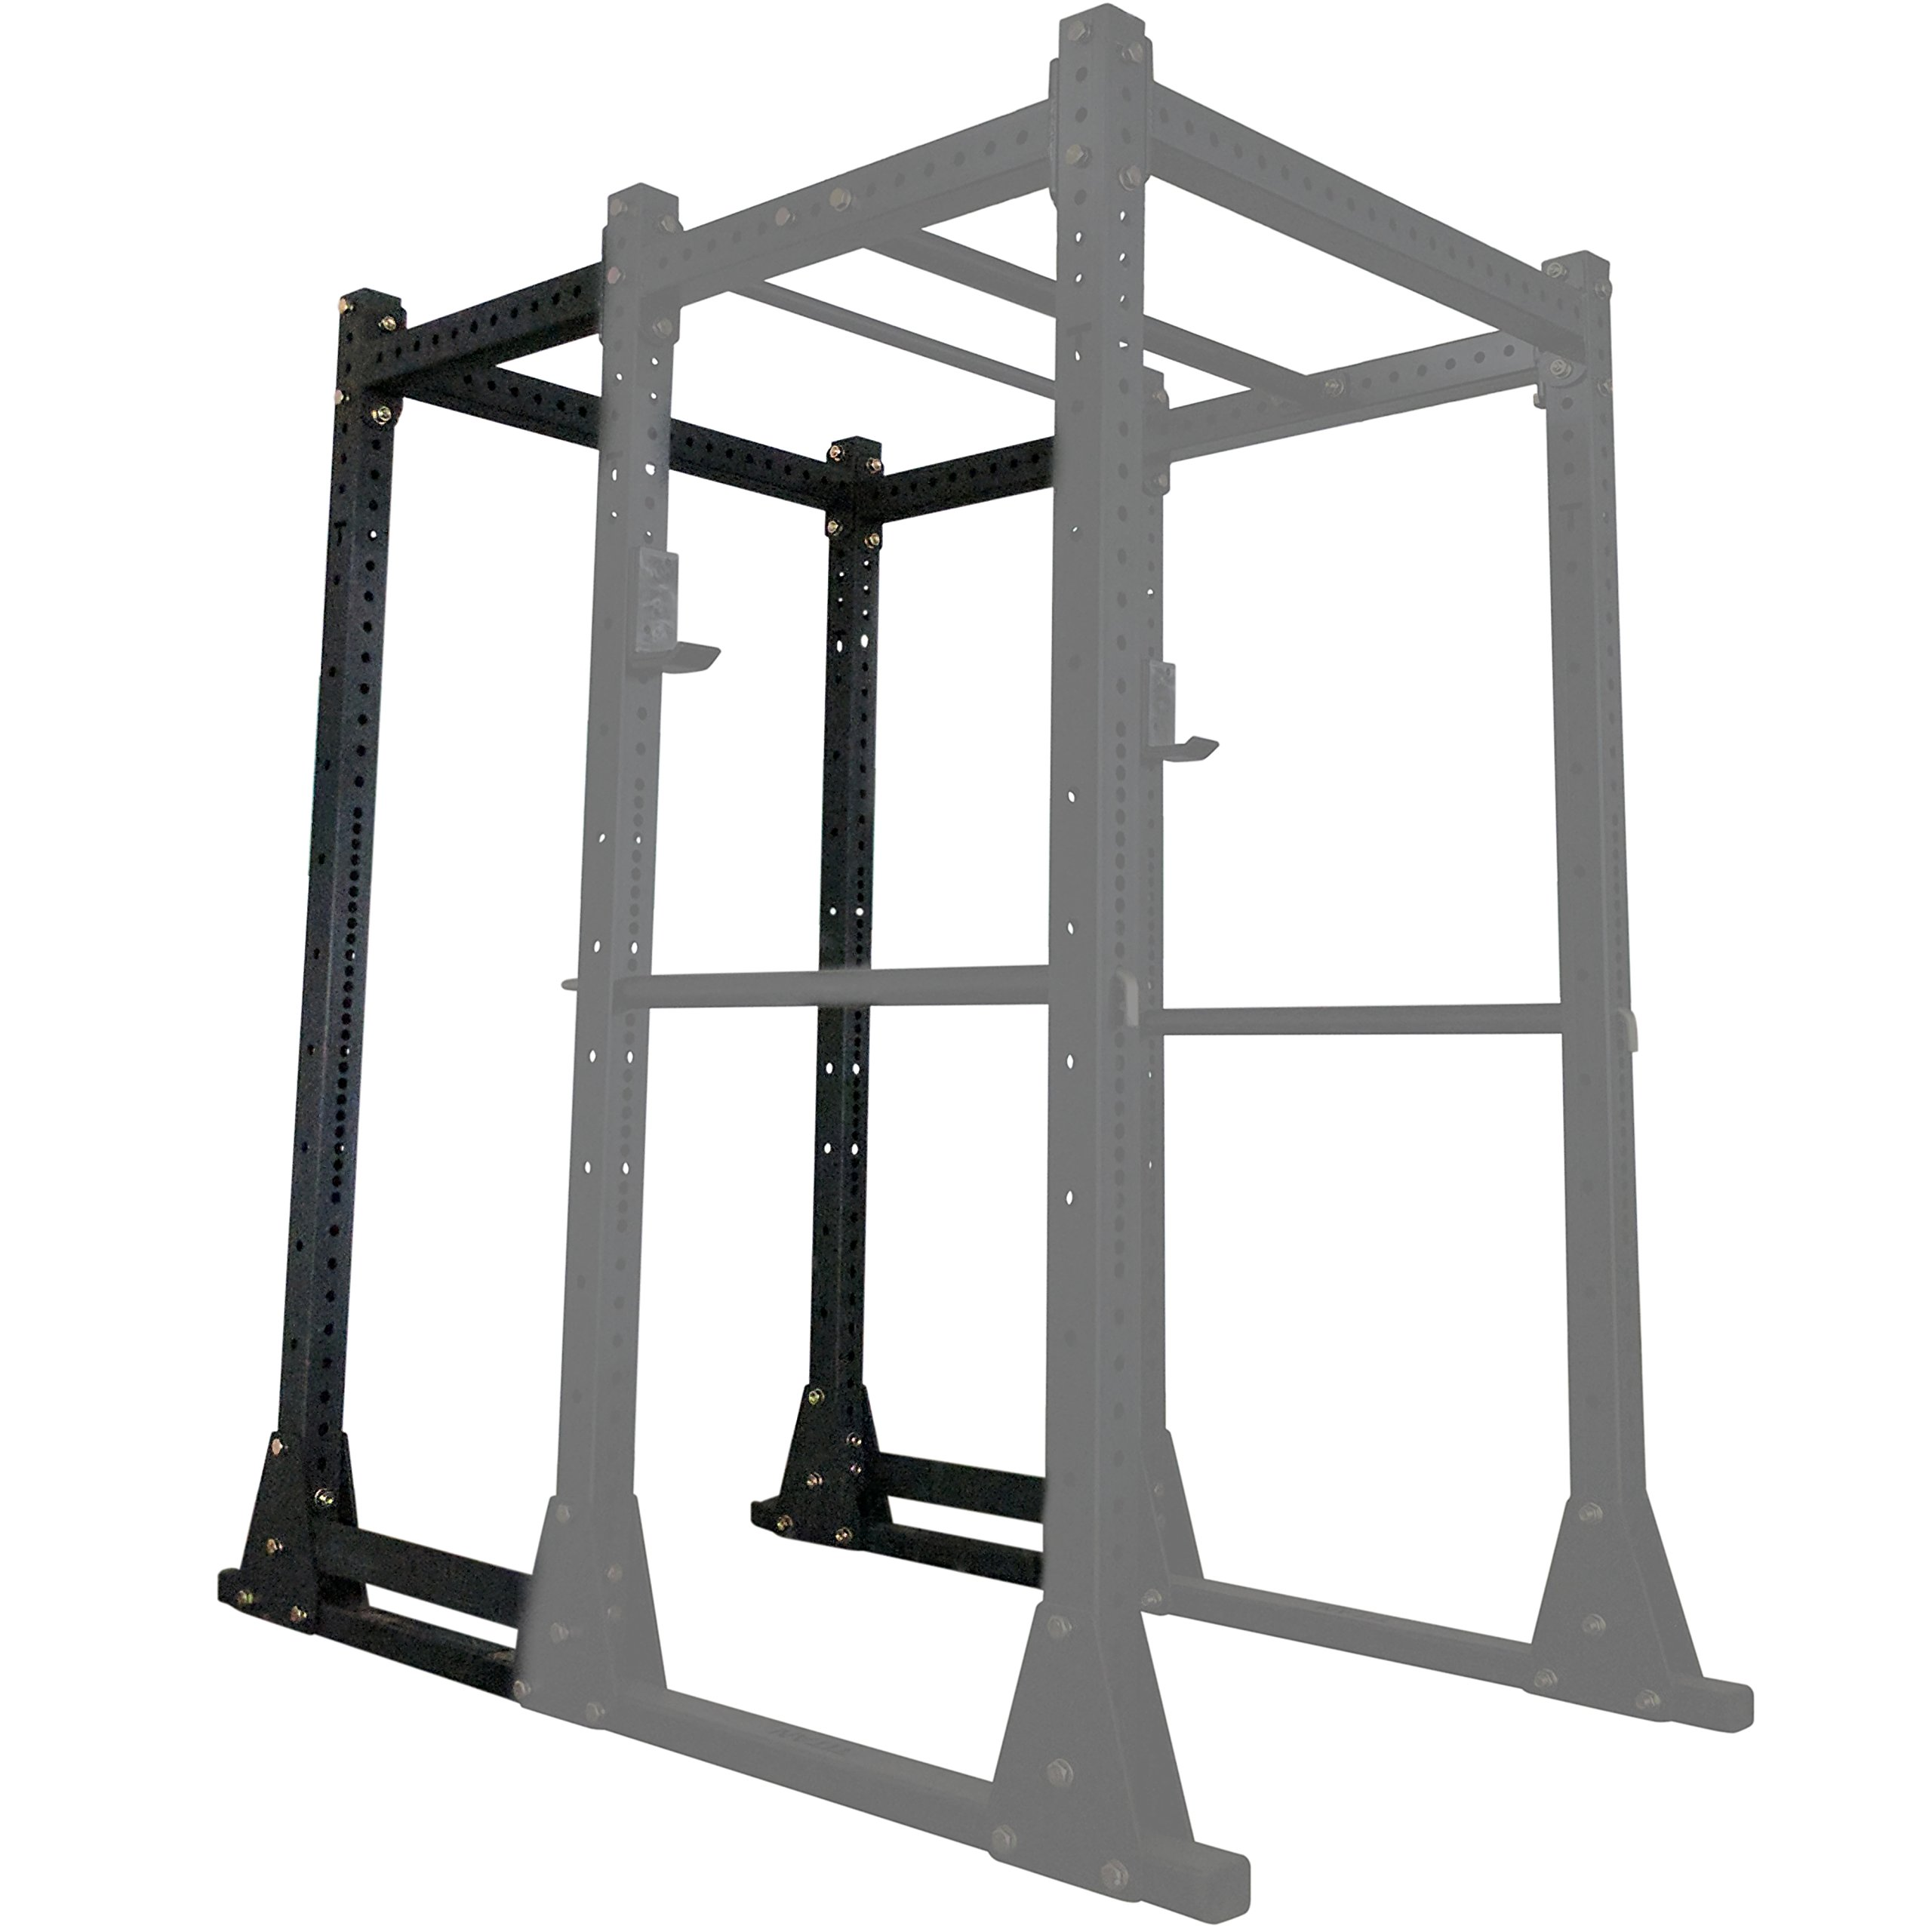 24'' Extension Kit for X-3 Short Power Rack